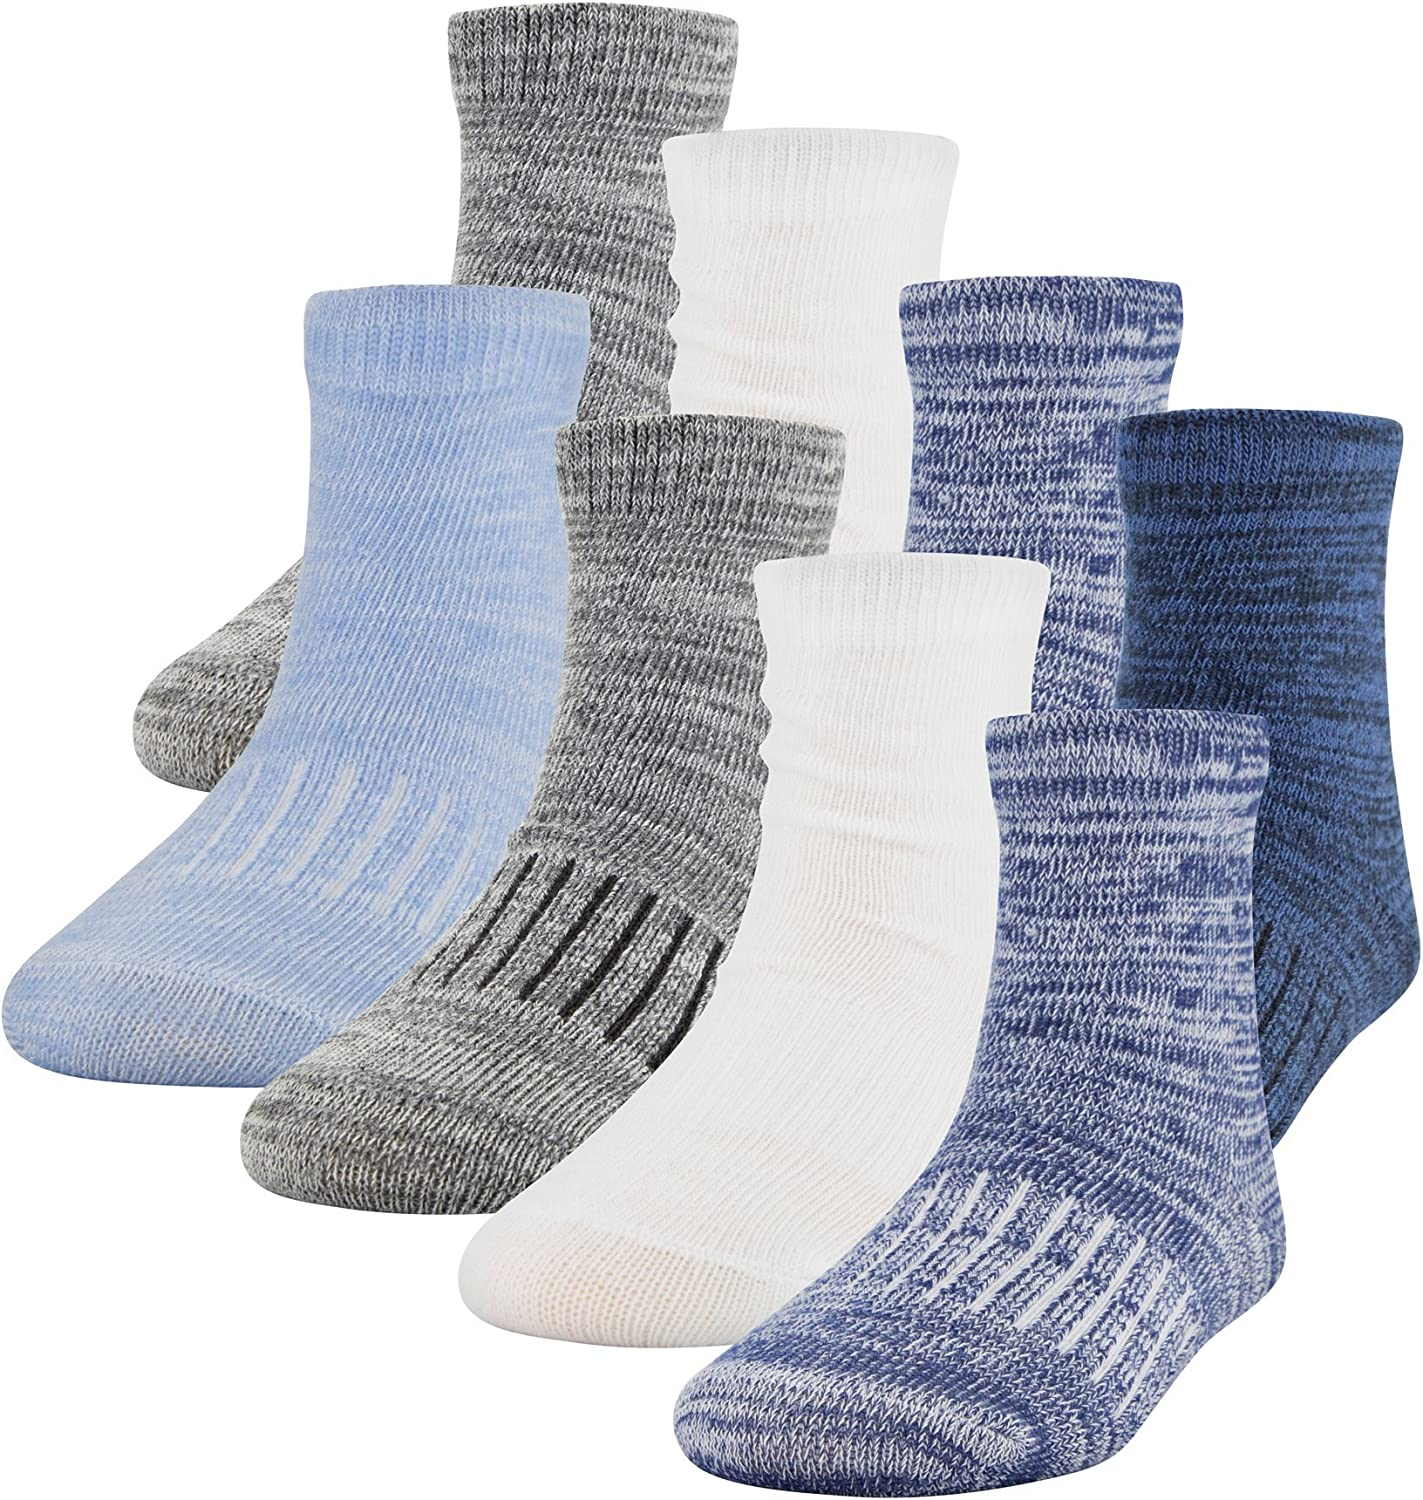 PEDS Unisex Baby-Toddler Growing Socks with Mesh Laundry Bag, 8 Pairs